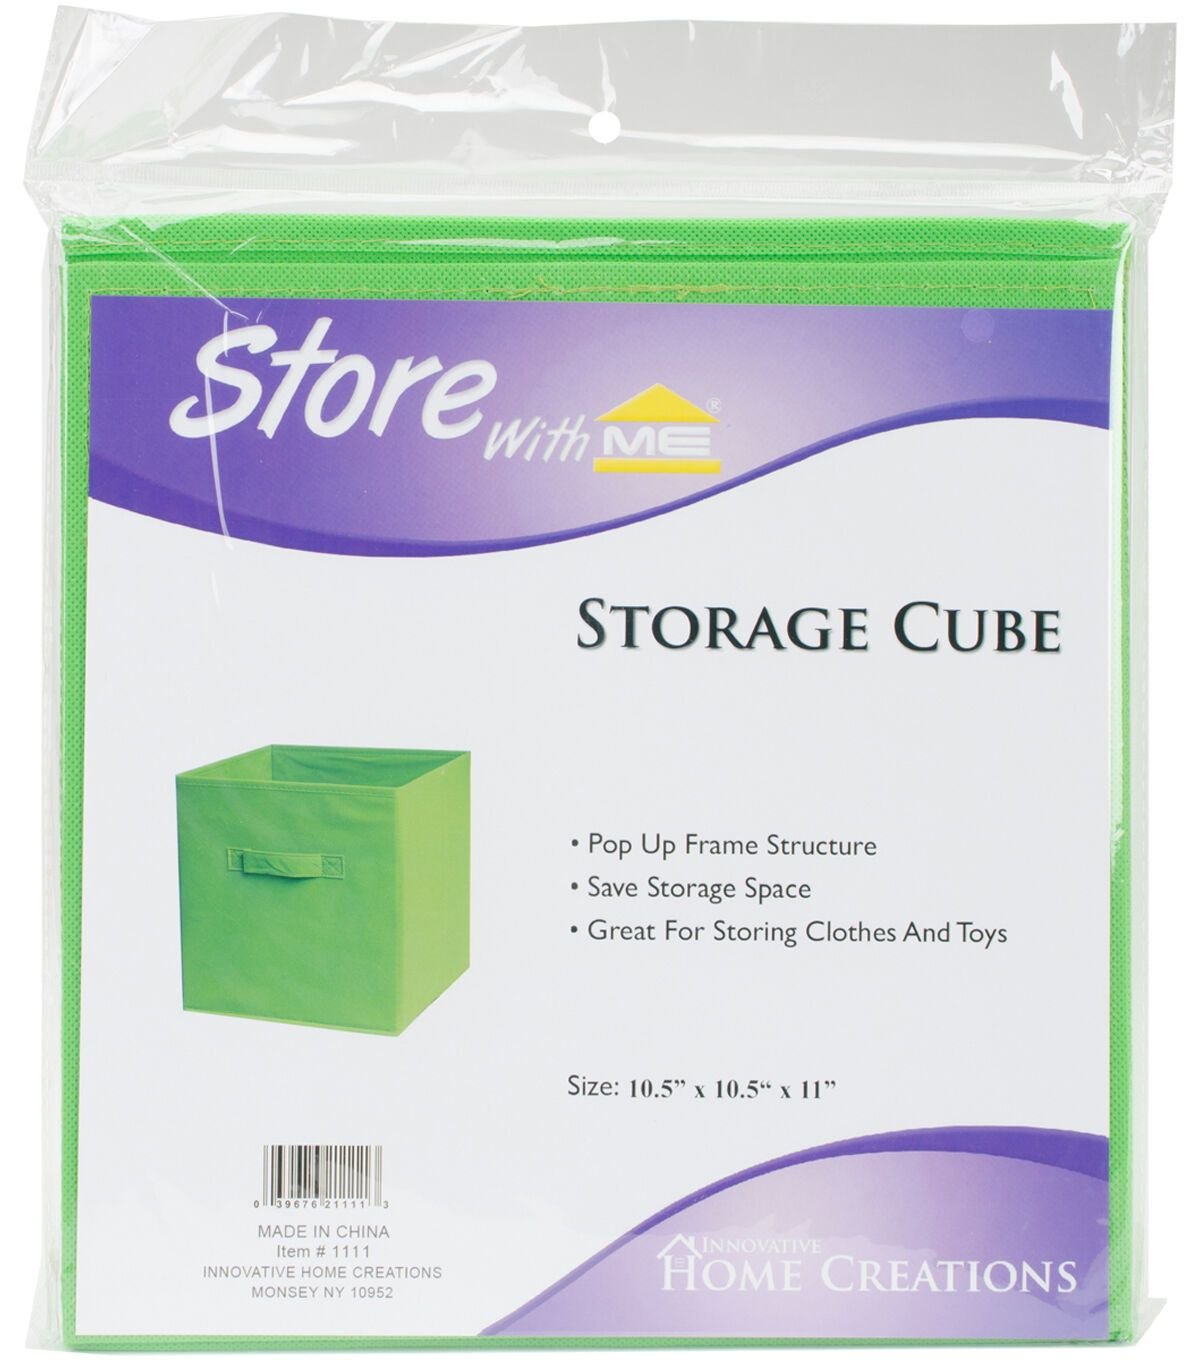 Square Fabric Storage Cube 10 5 X10 5 X11 Green In 2020 Fabric Storage Cube Storage Fabric Squares